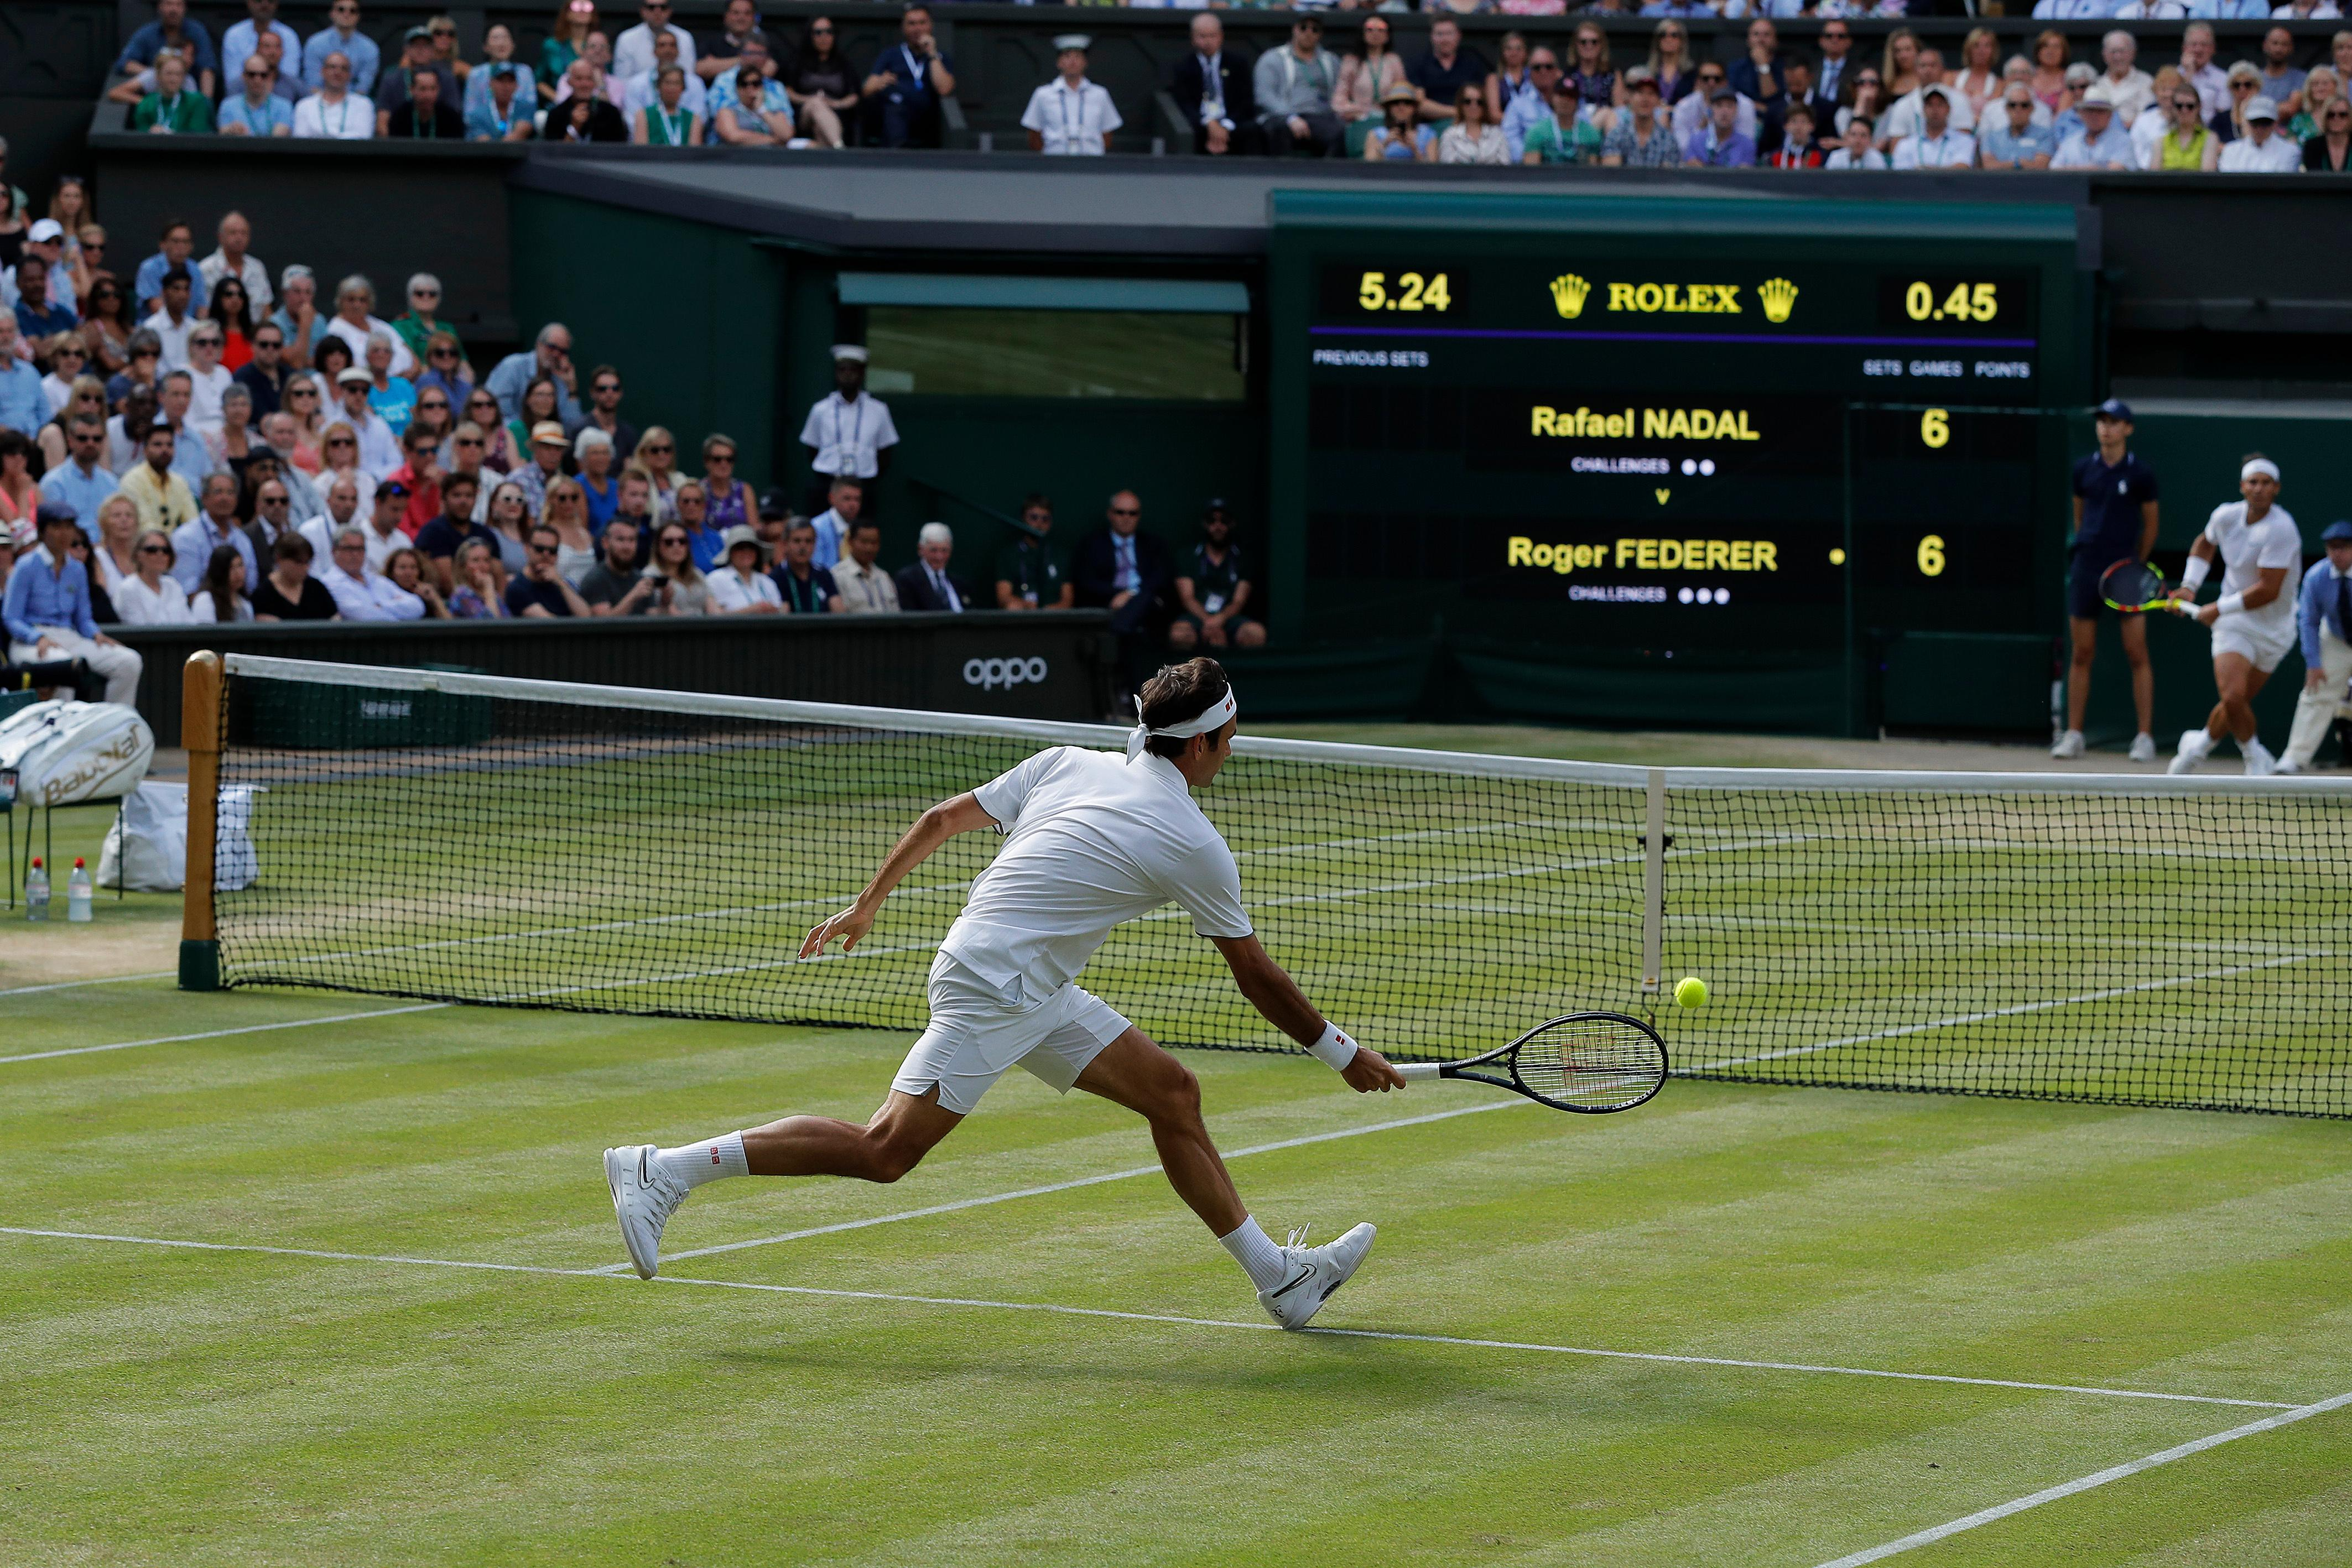 Federer and Nadal renew old rivalry and serve up a contest for the ages